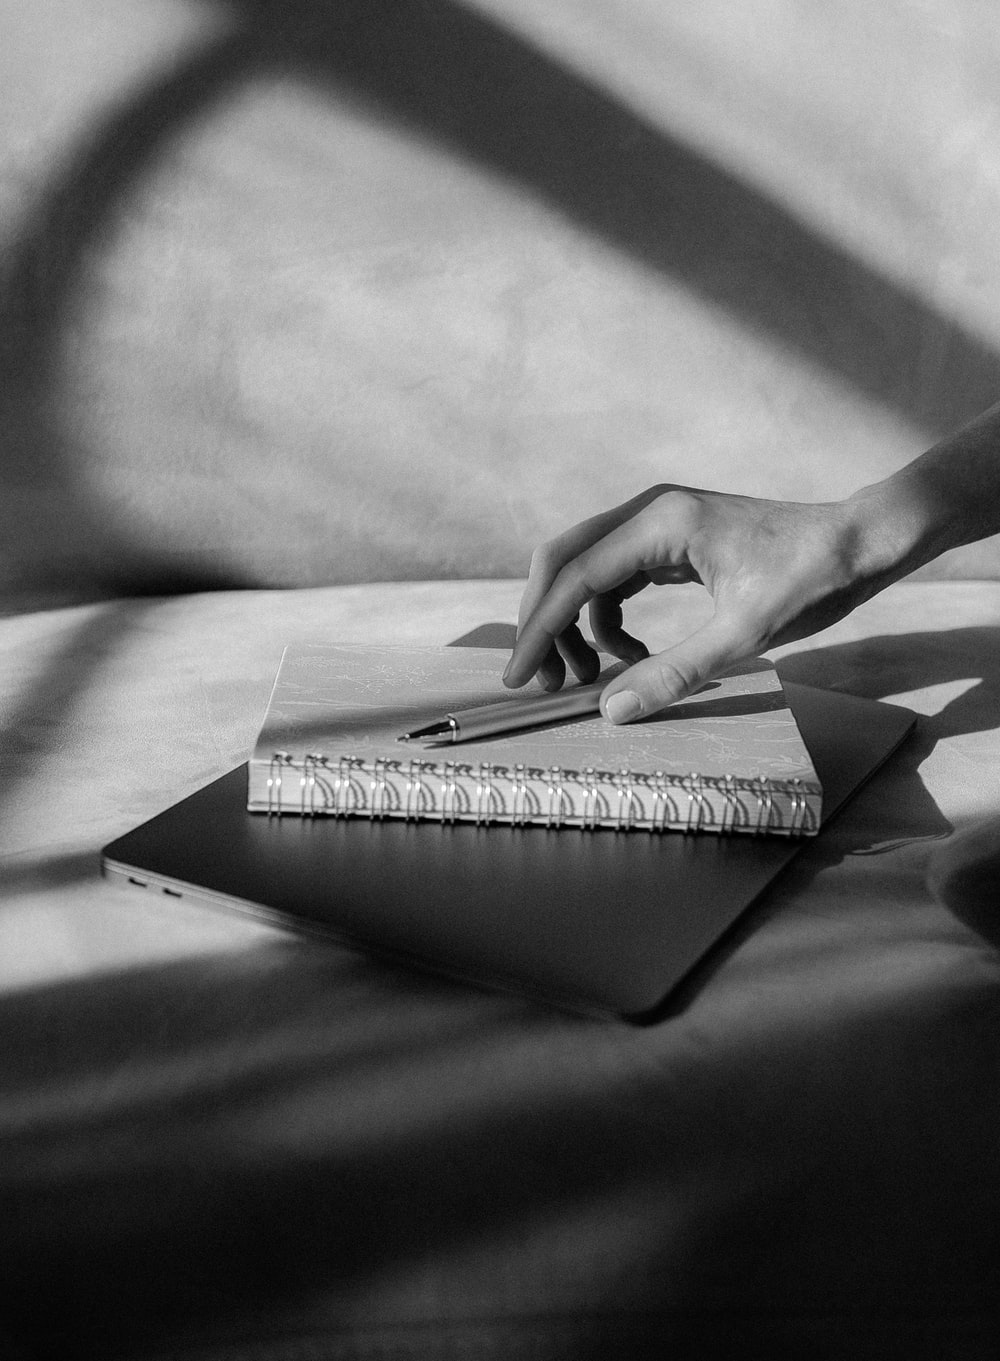 grayscale photo of persons hand on book